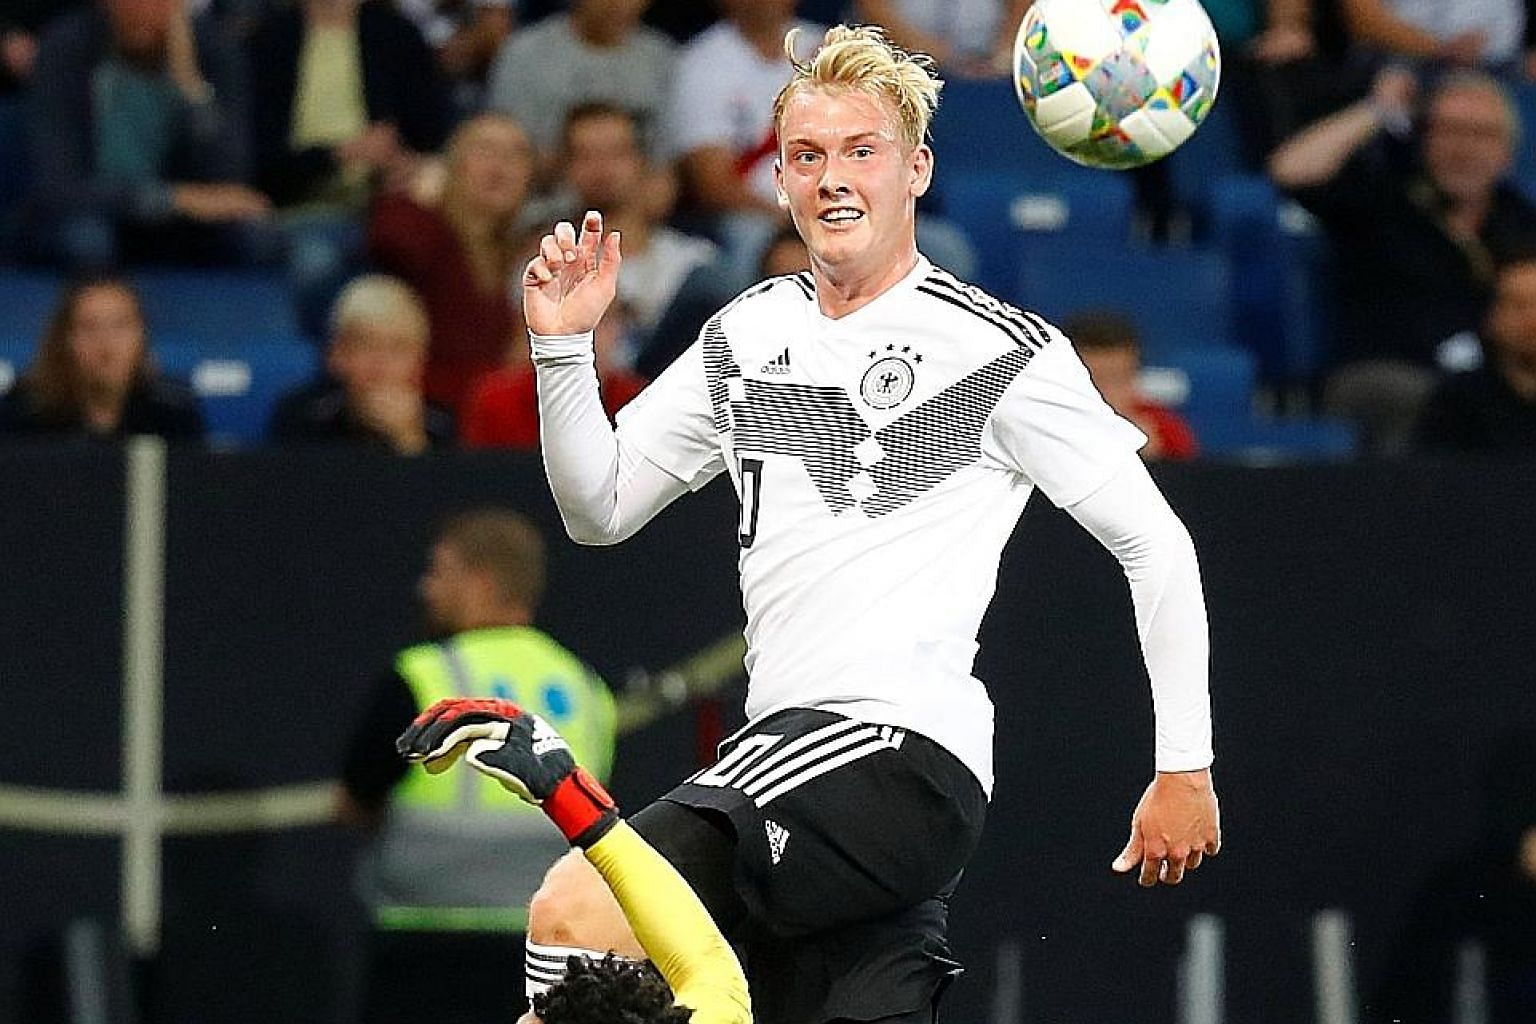 Germany's Julian Brandt lifting the ball over Peruvian goalkeeper Pedro Gallese to score their first goal during their international friendly. The Germans won 2-1 as they continued their rehabilitation following their group-stage exit at the World Cu